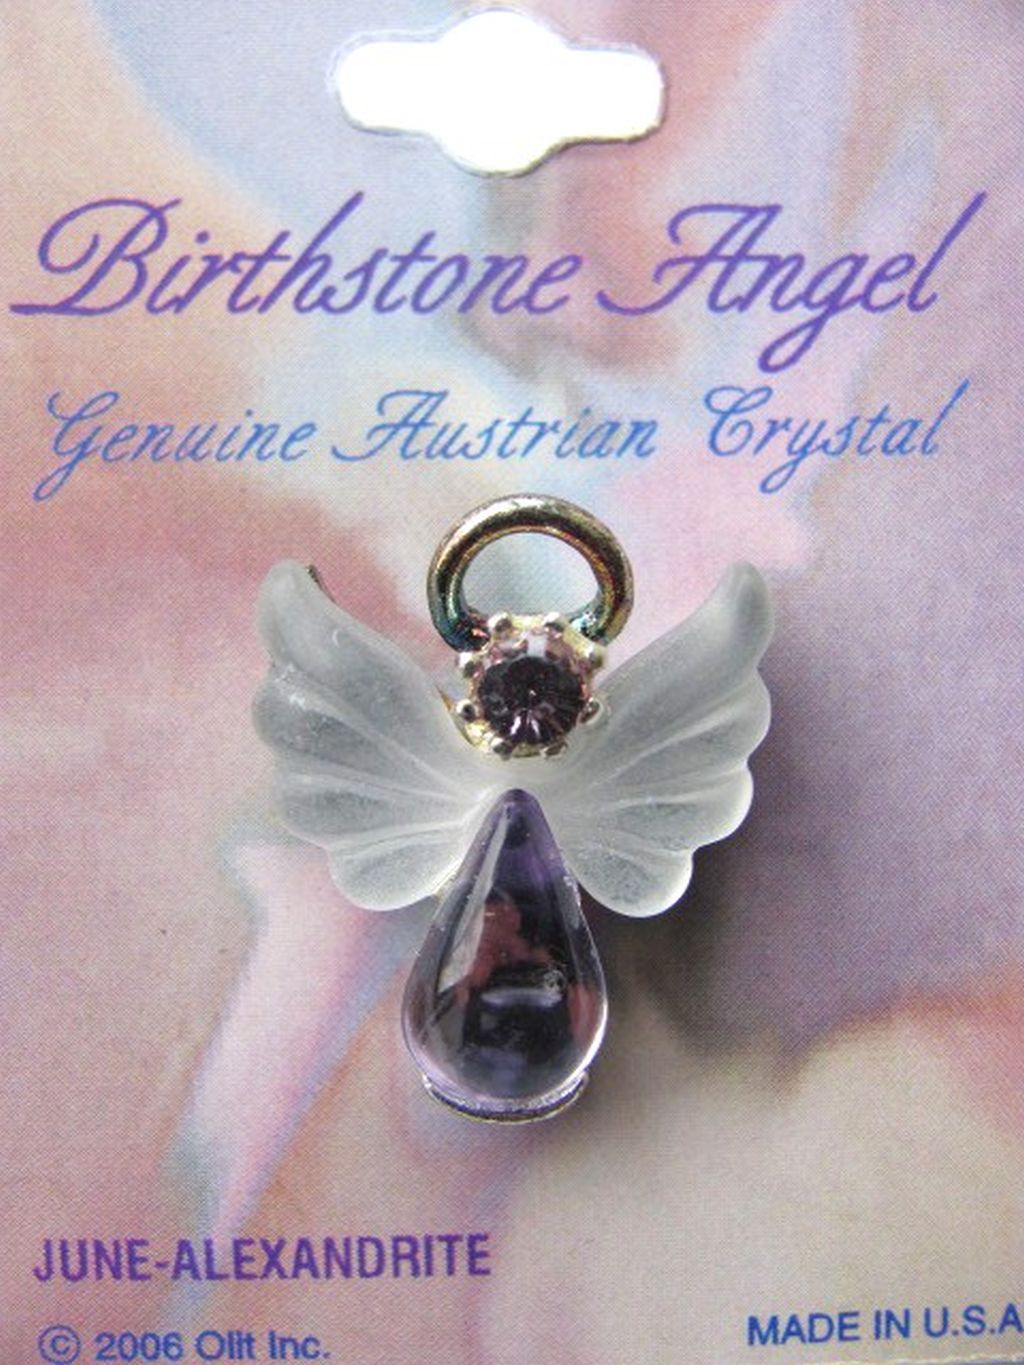 Alexandrite June Birthstone Angel Pin Genuine Austrian